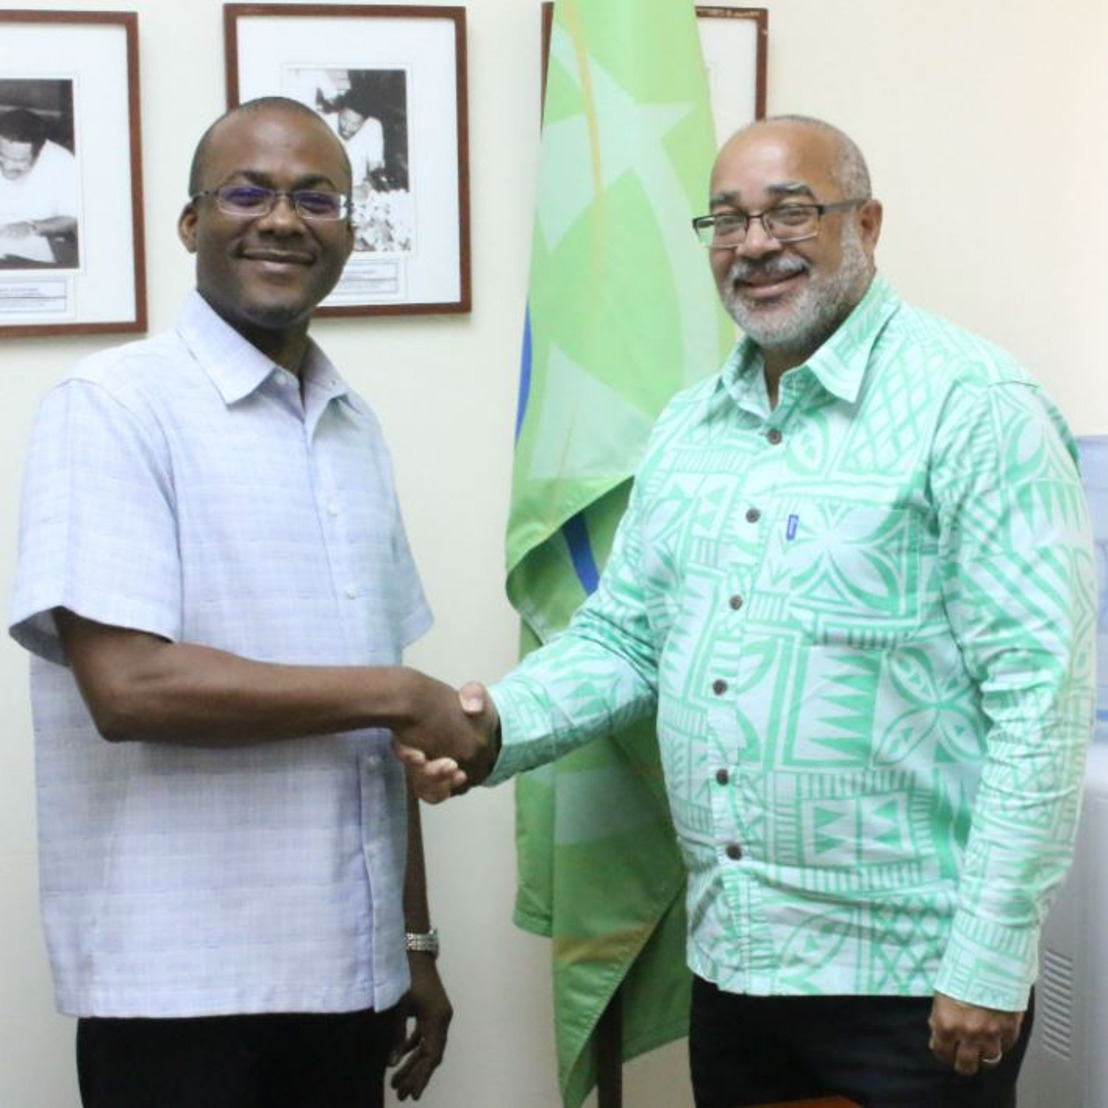 OECS and ARIN Extend Cooperation to Strengthen Caribbean Information and Communication Technology